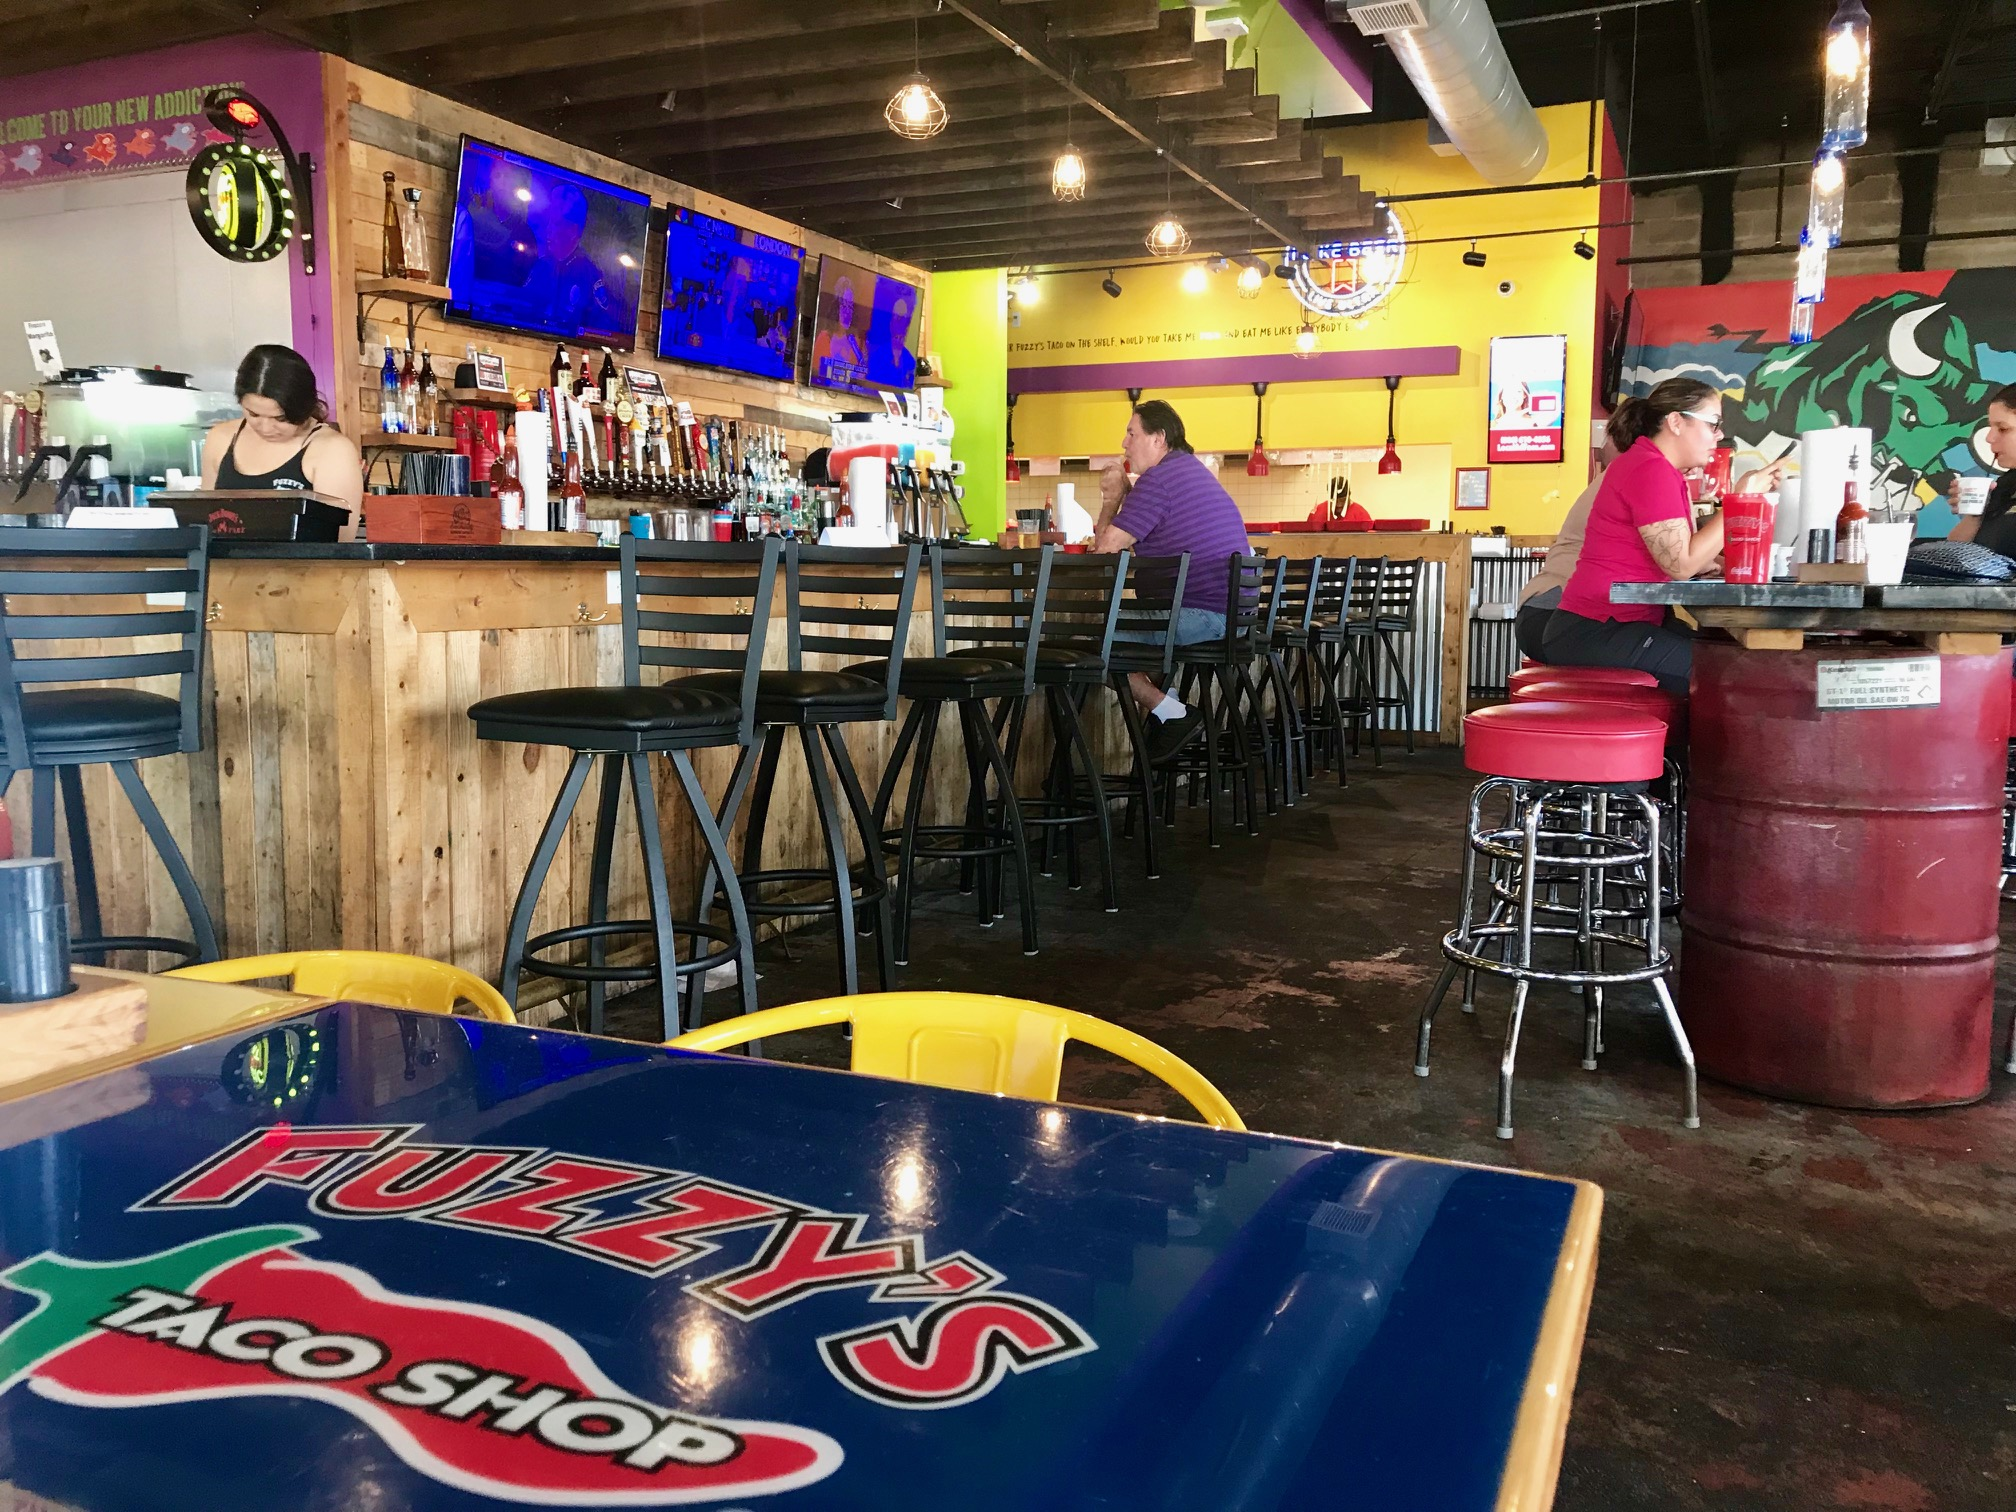 Photo taken inside Fuzzy's Tampa